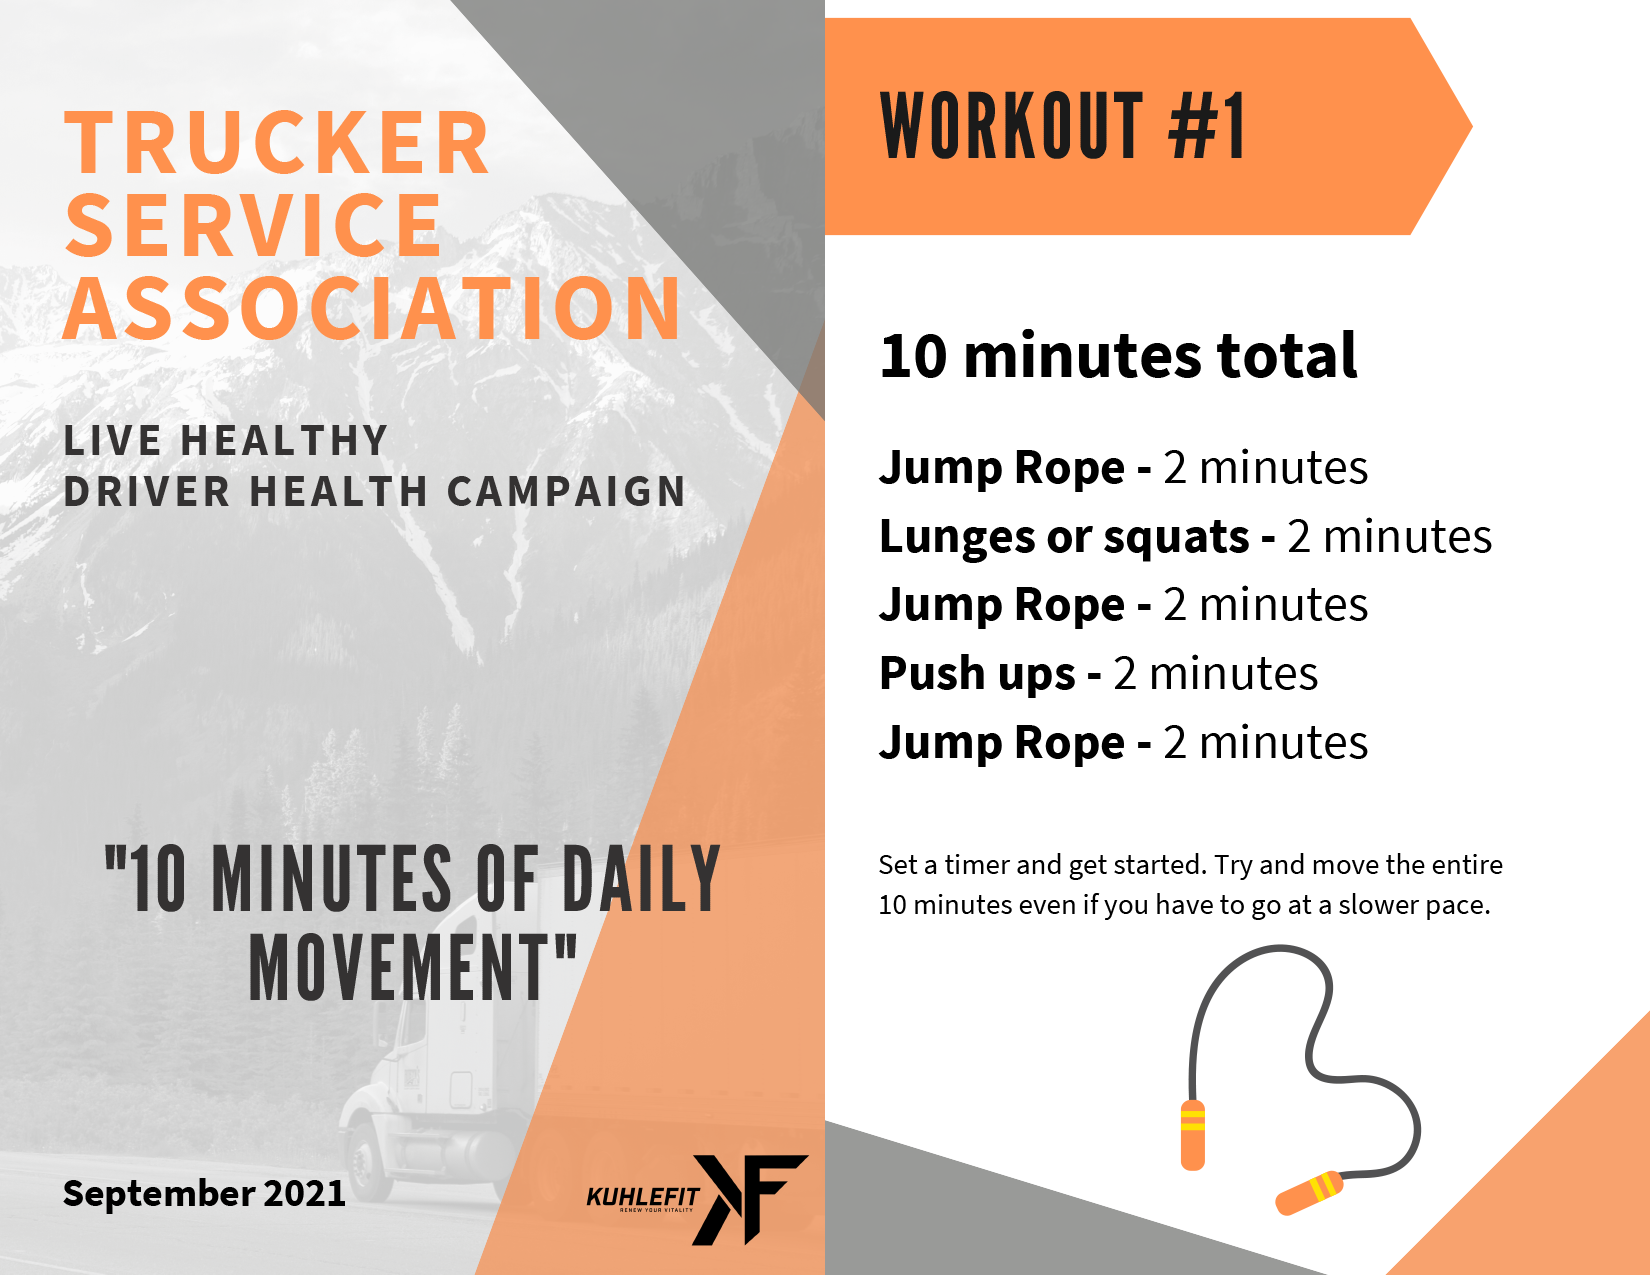 10 Minutes of Daily Movement September 2021 Truckers